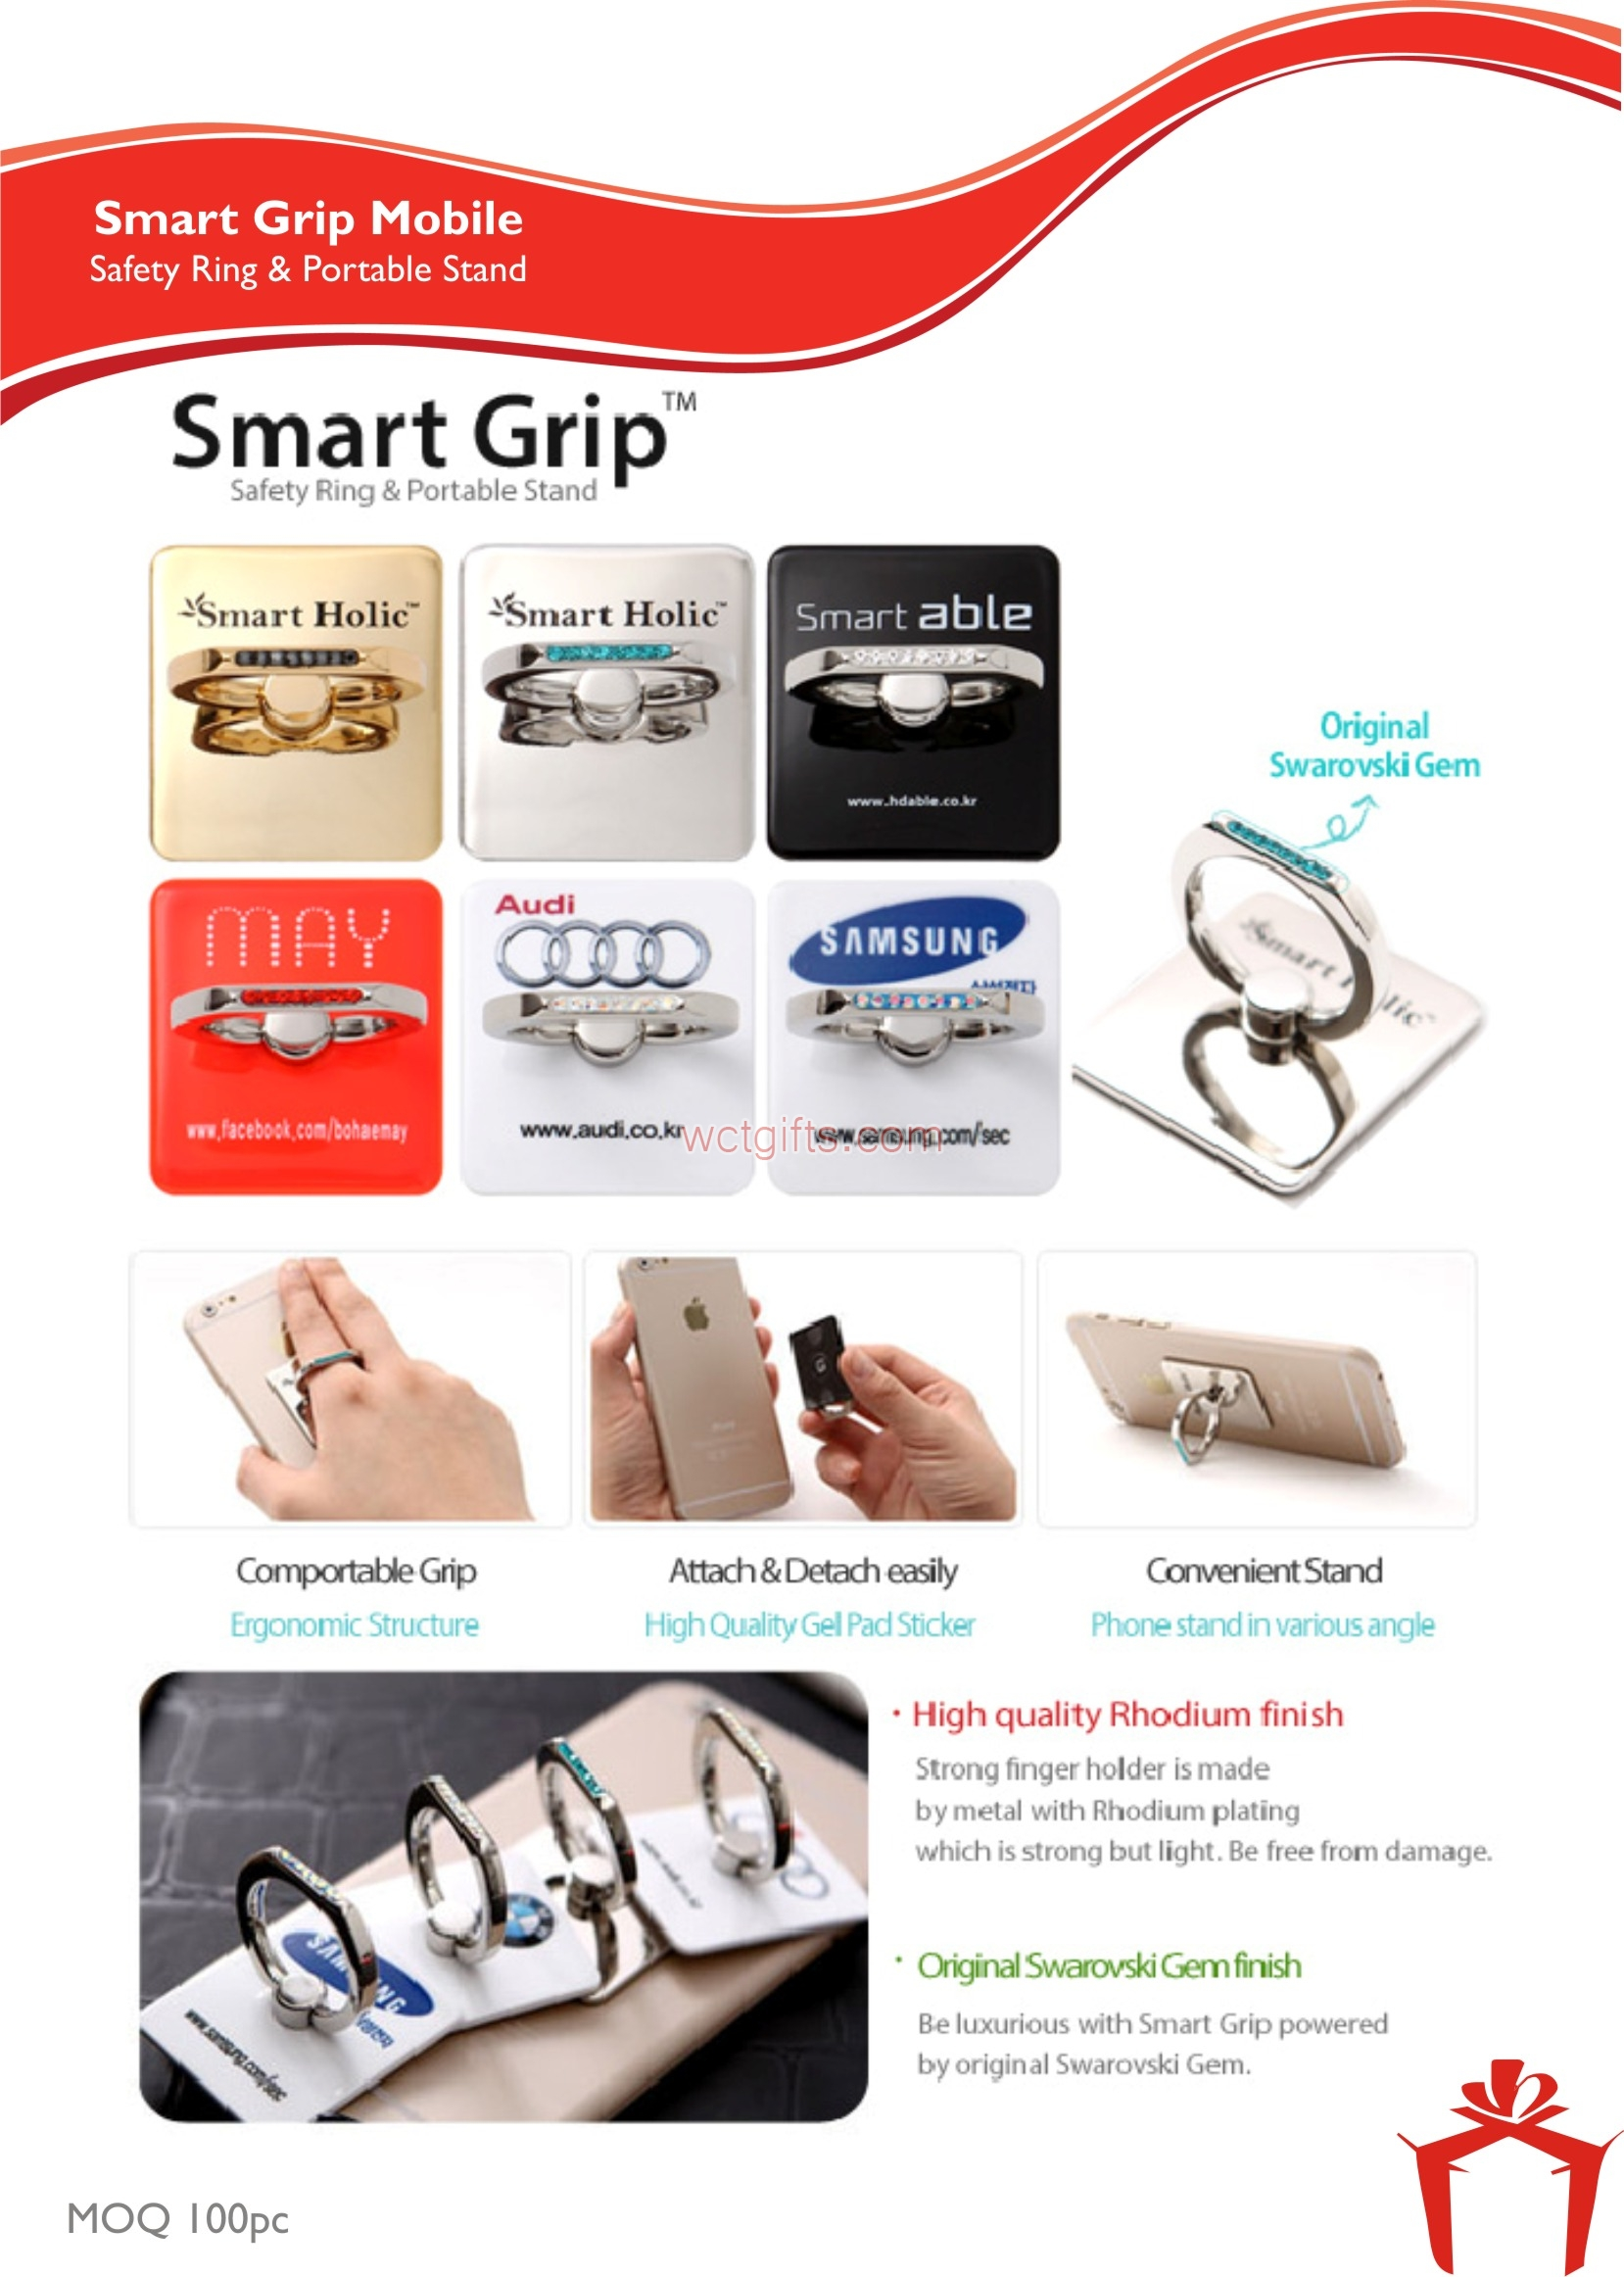 Smart Grip Mobile